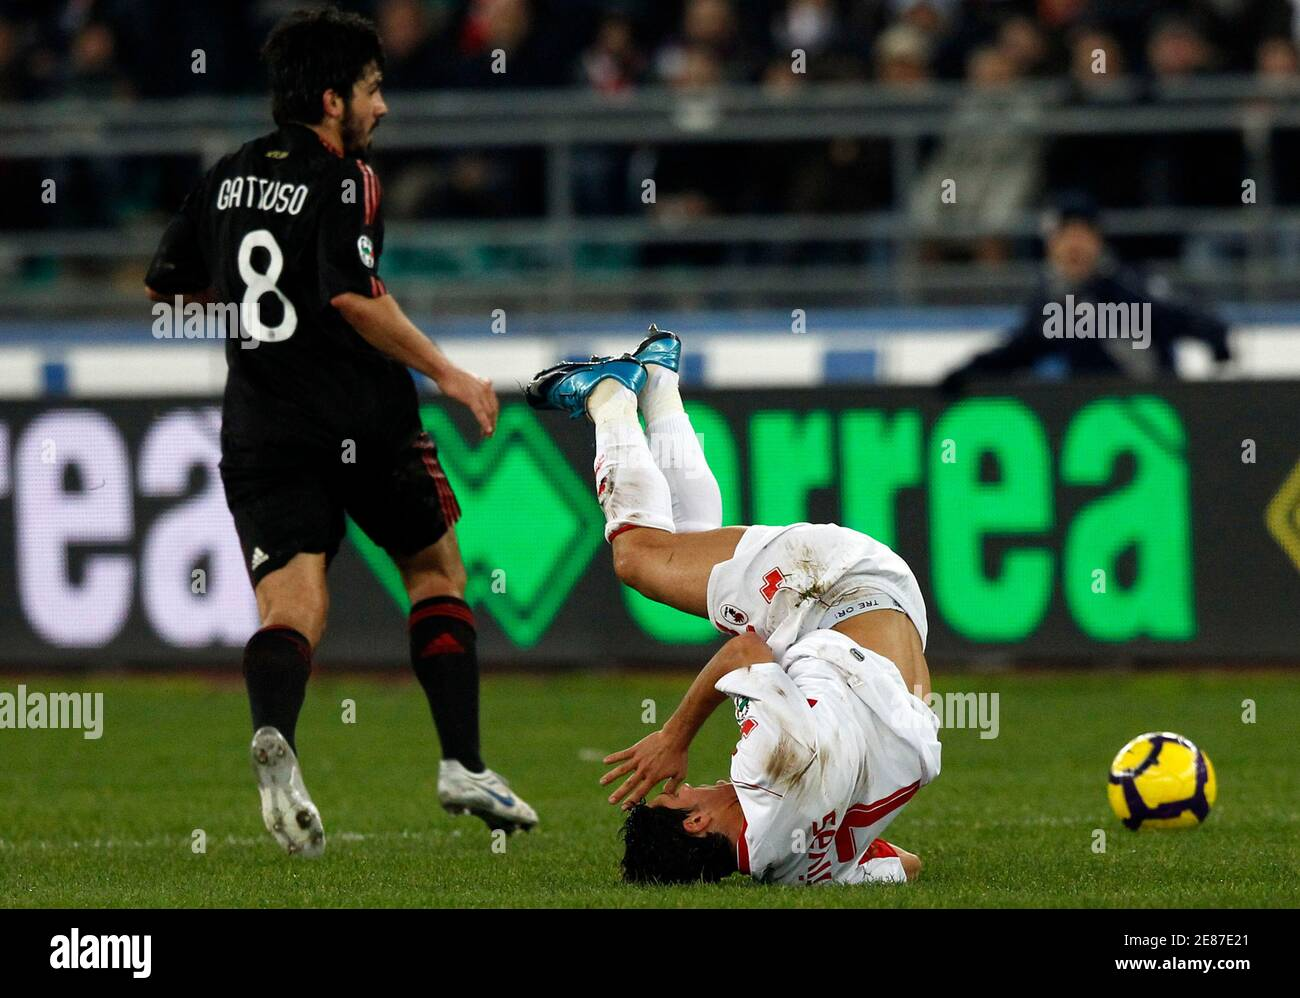 Bari's Emanuel Benito Rivas (R) flies down as  Gennaro Gattuso (C) of AC Milan passes near during their Serie A soccer match at the San Nicola stadium in Bari February 21, 2010.  REUTERS/Alessandro Bianchi   (ITALY - Tags: SPORT SOCCER) Foto Stock